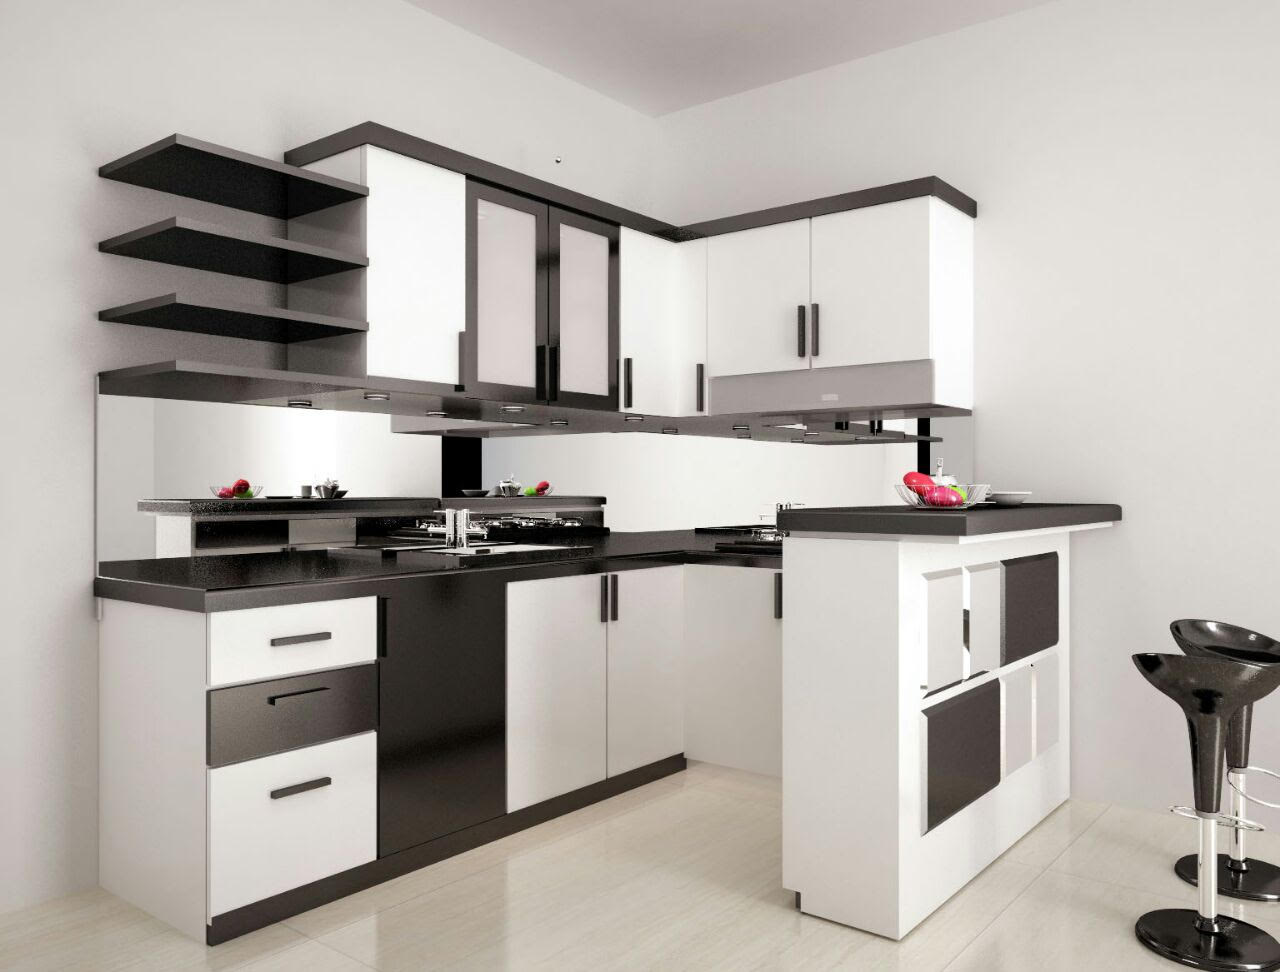 Idesign Arsitektur Kitchen Set Hitam Putih